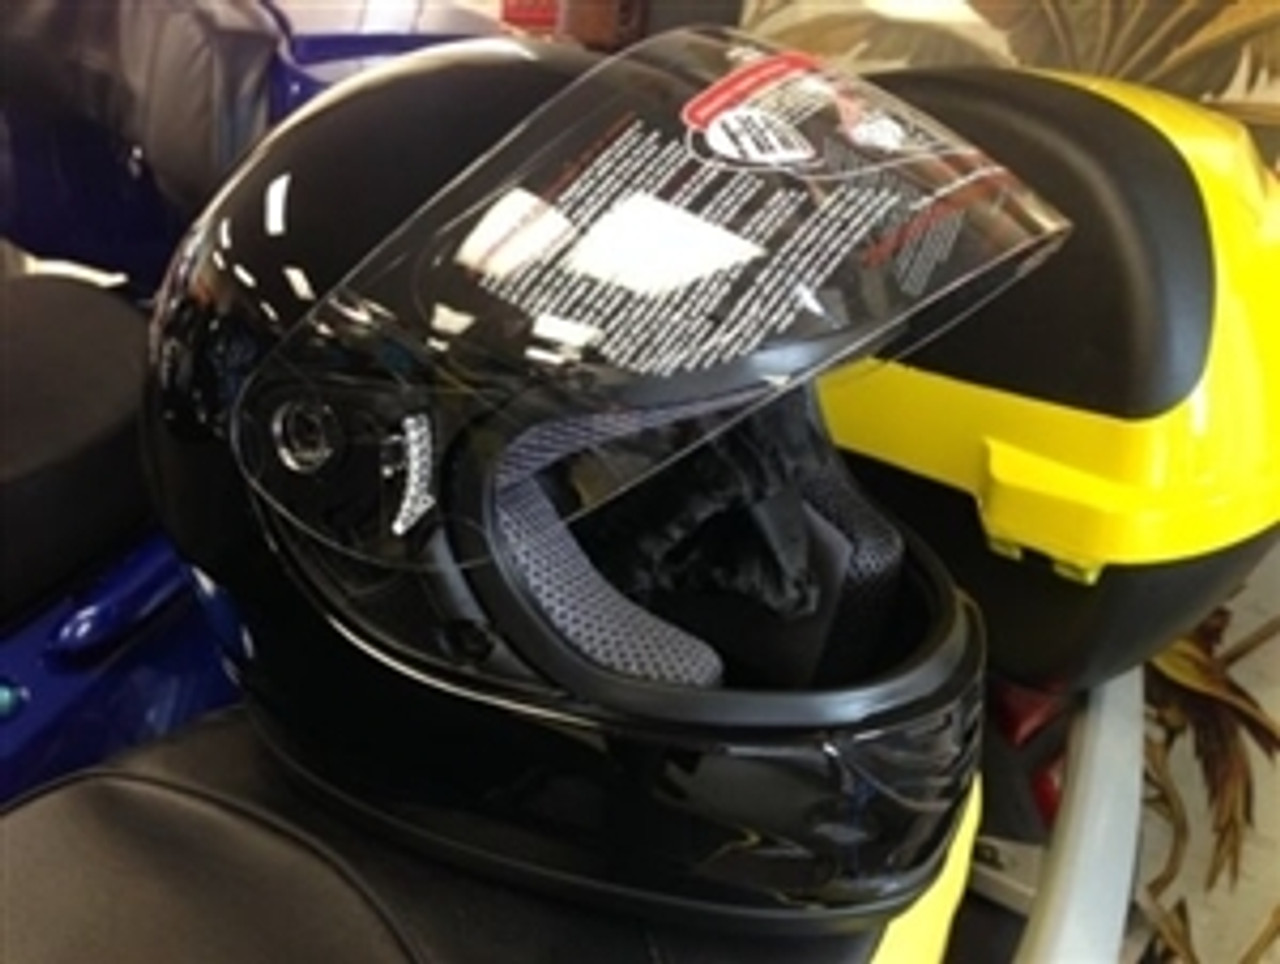 Full face Adult size helmet